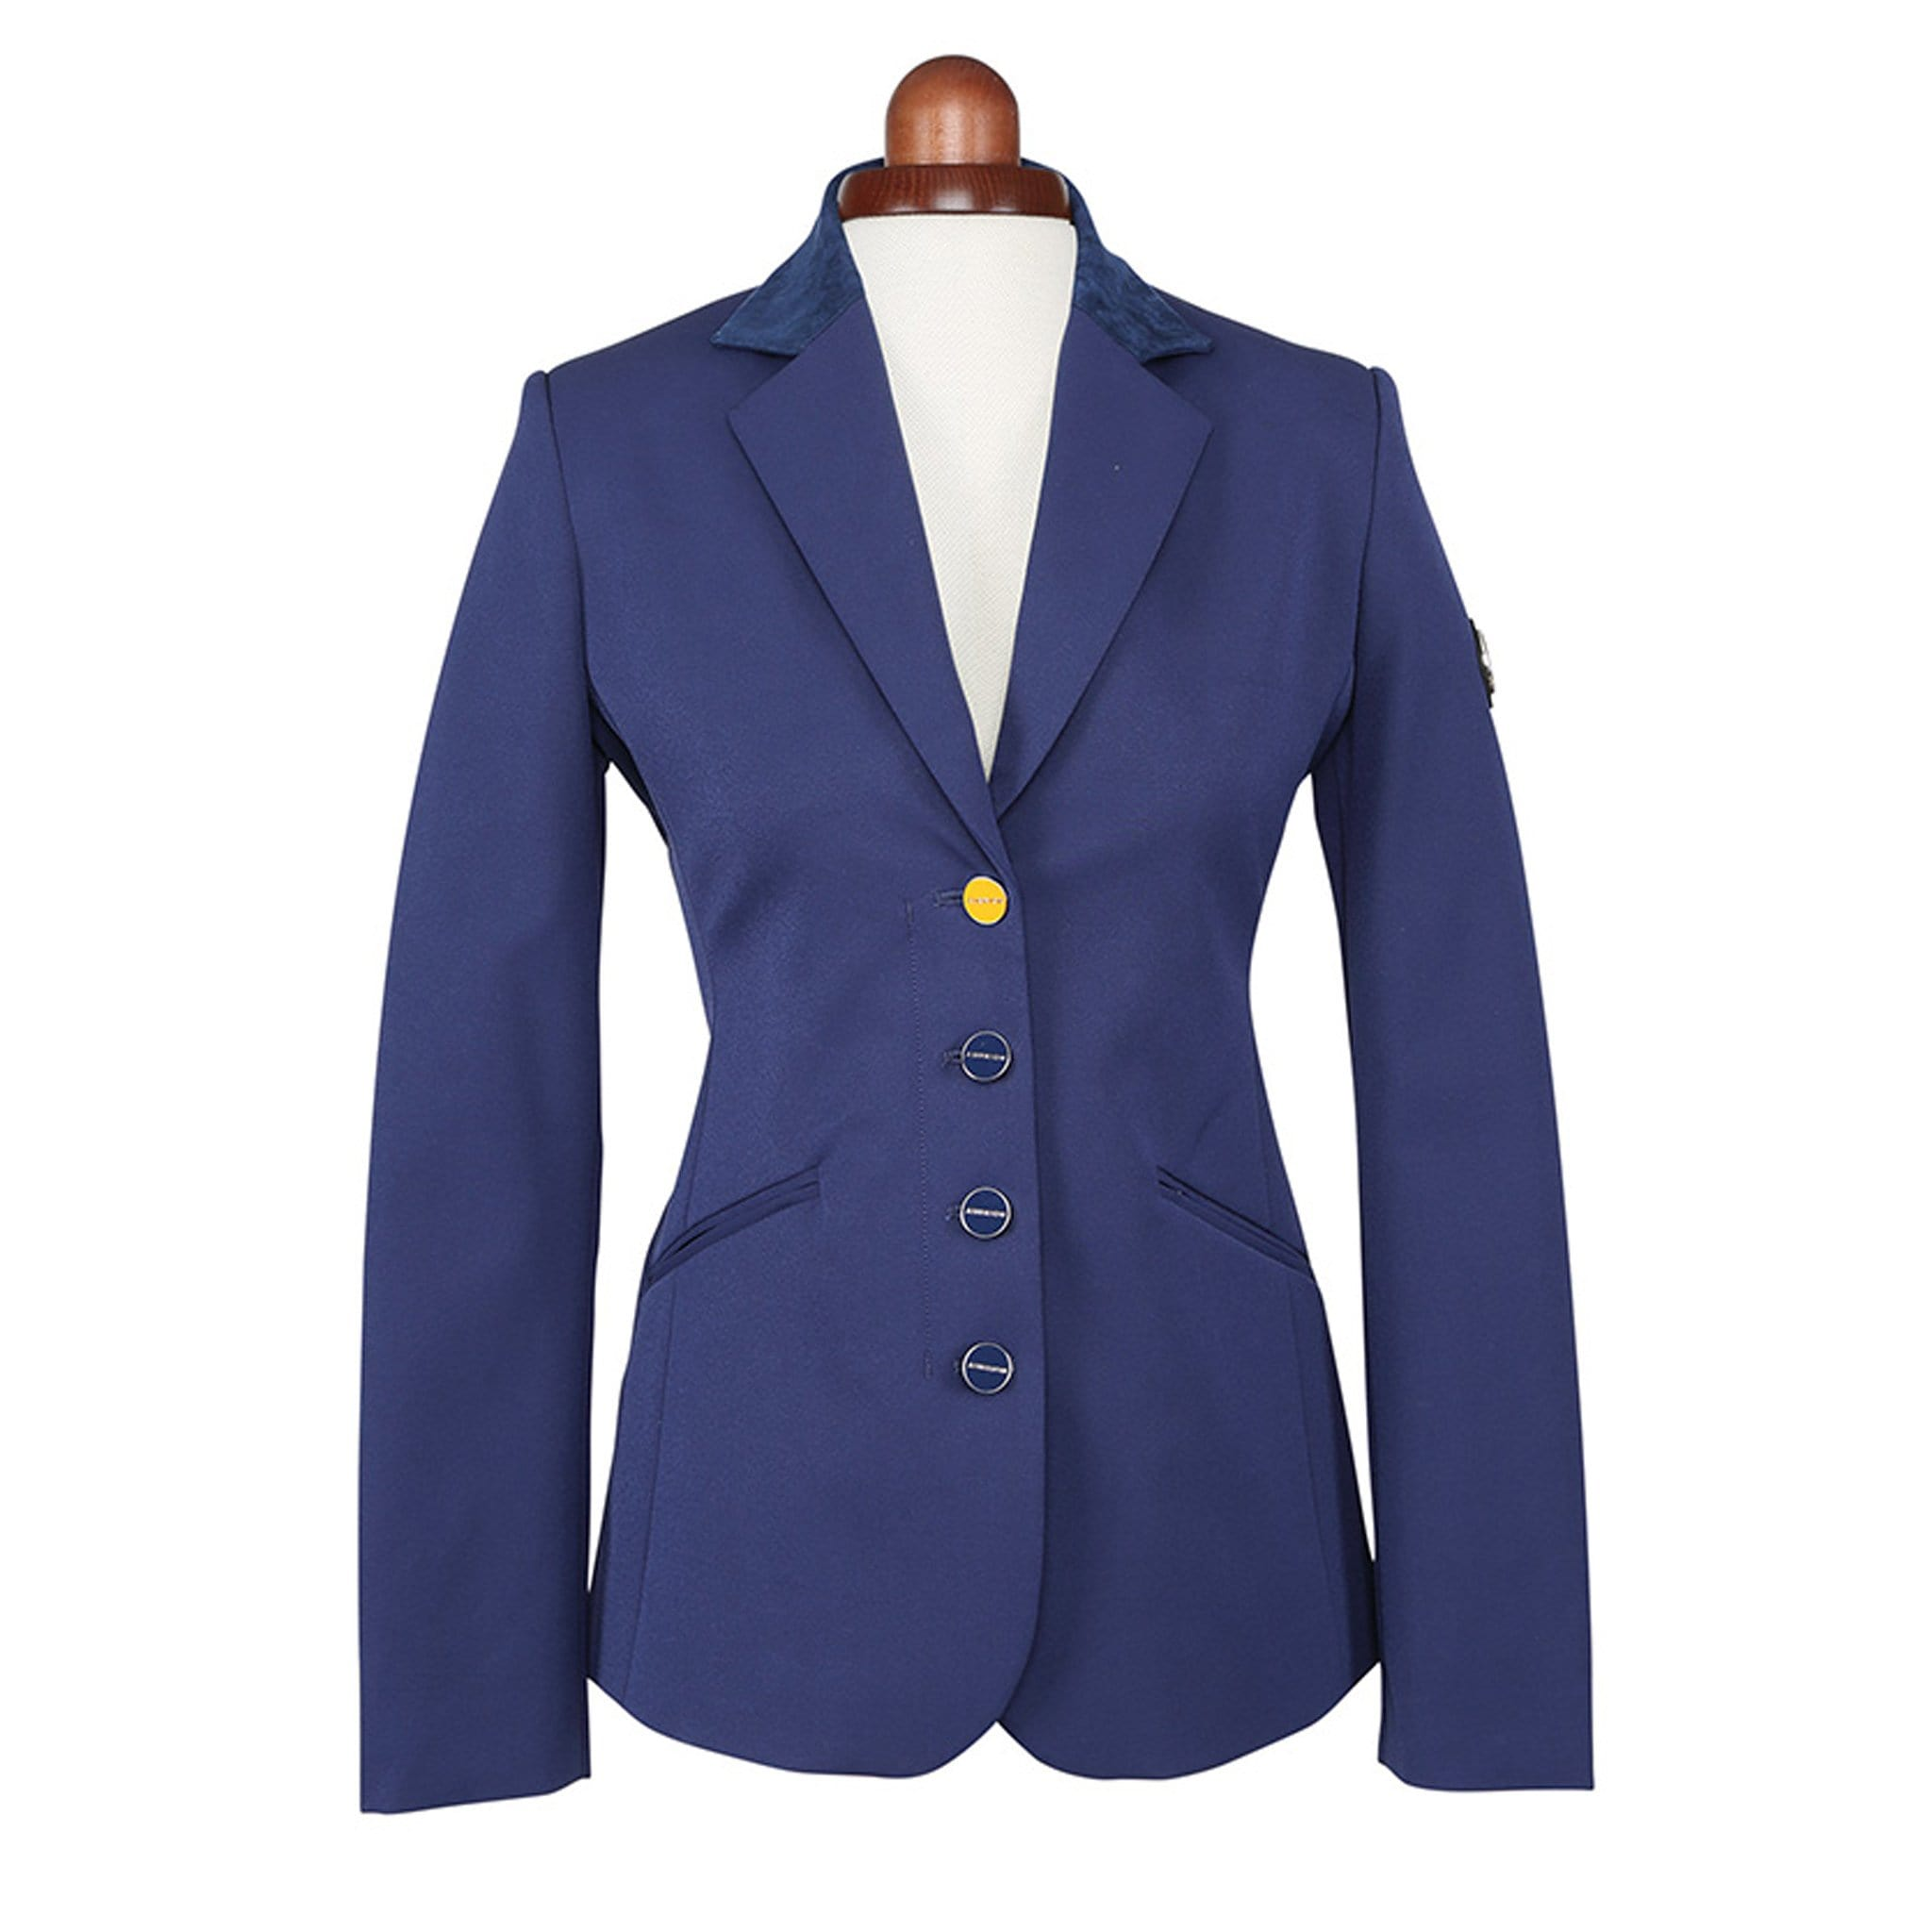 Shires Aubrion Calder Show Jacket Navy Studio 9133